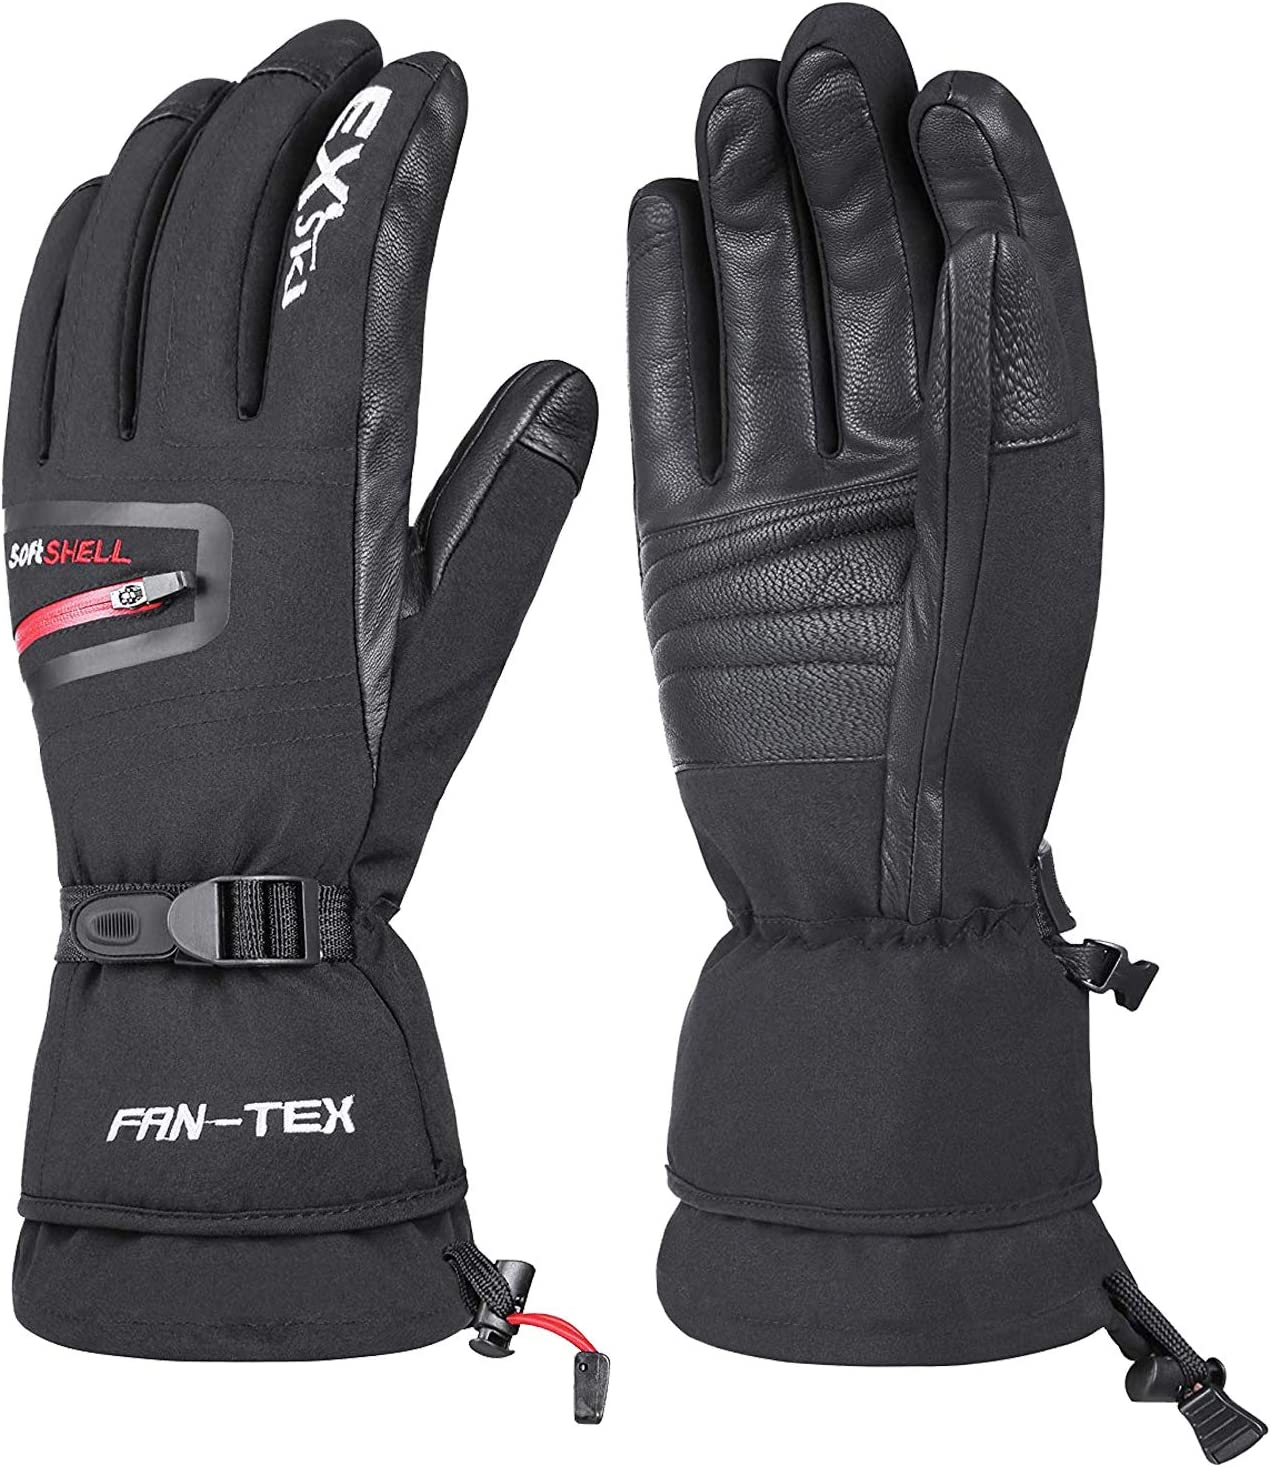 EXski Waterproof Mens Ski Gloves